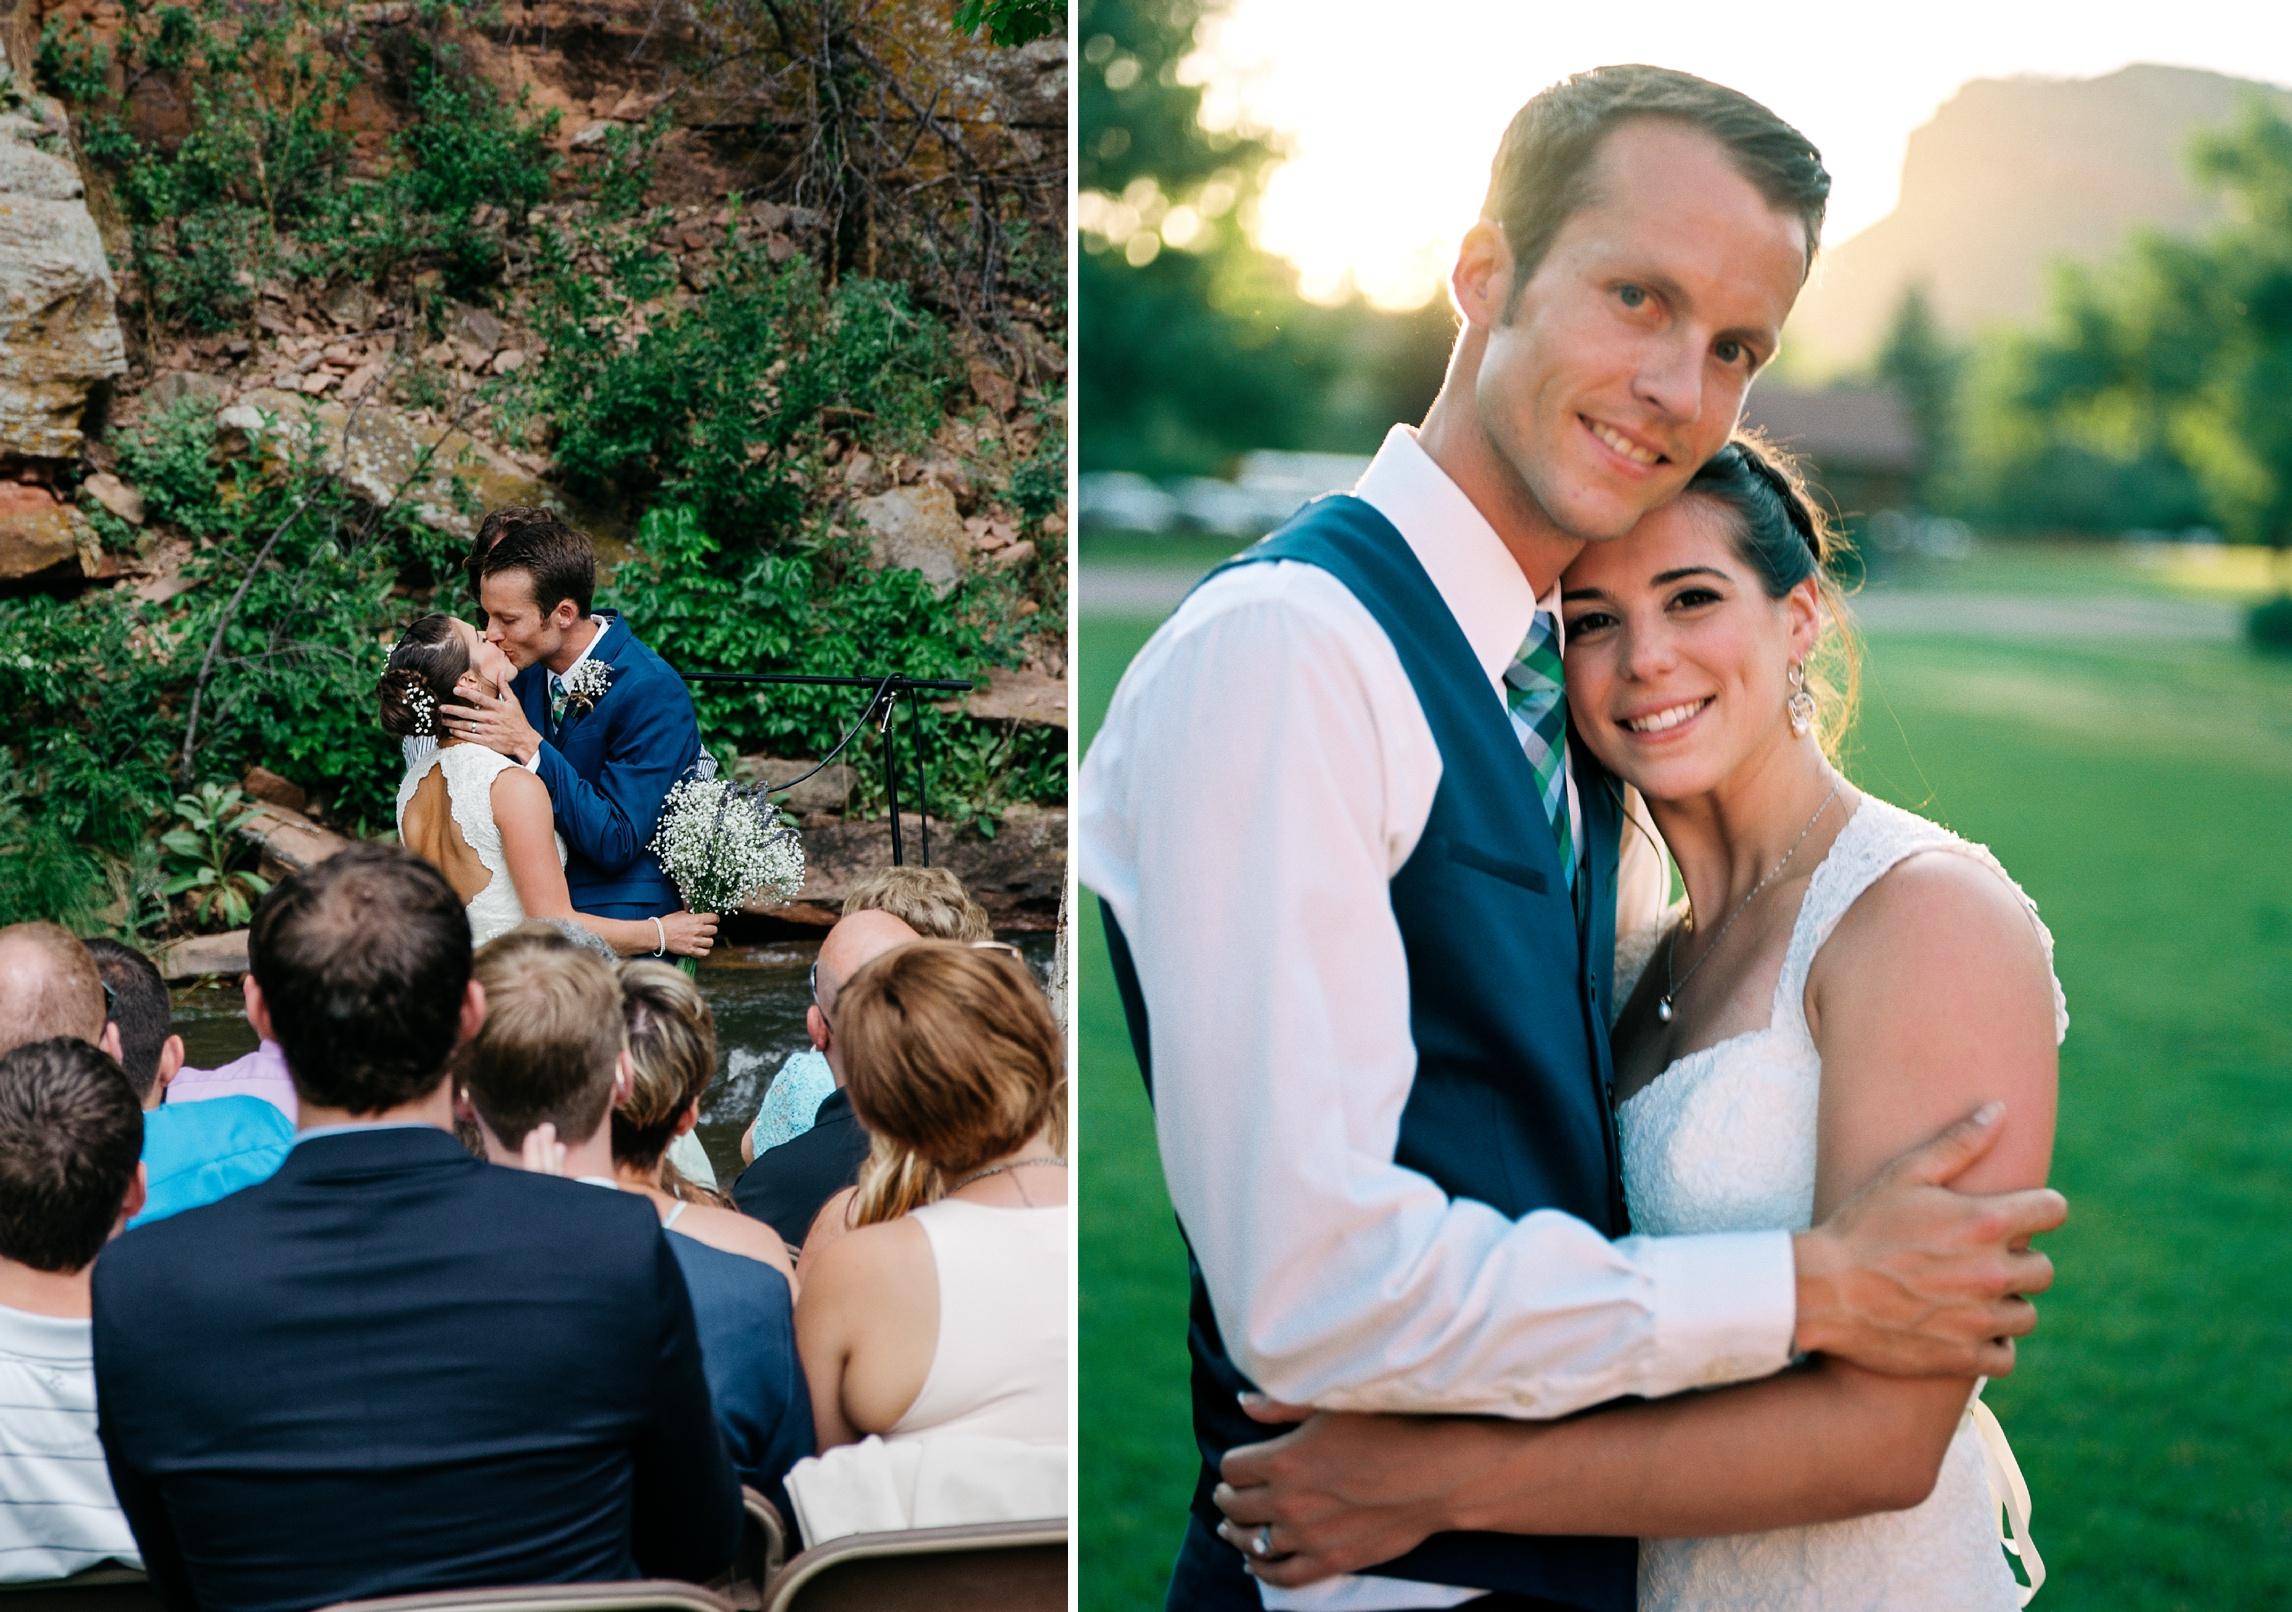 Melissa and Patrick are married on the banks of the St. Vrain River at Planet Bluegrass in Lyons, Colorado. Wedding photography by Sonja and Max Salzburg of Sonja K Photography.